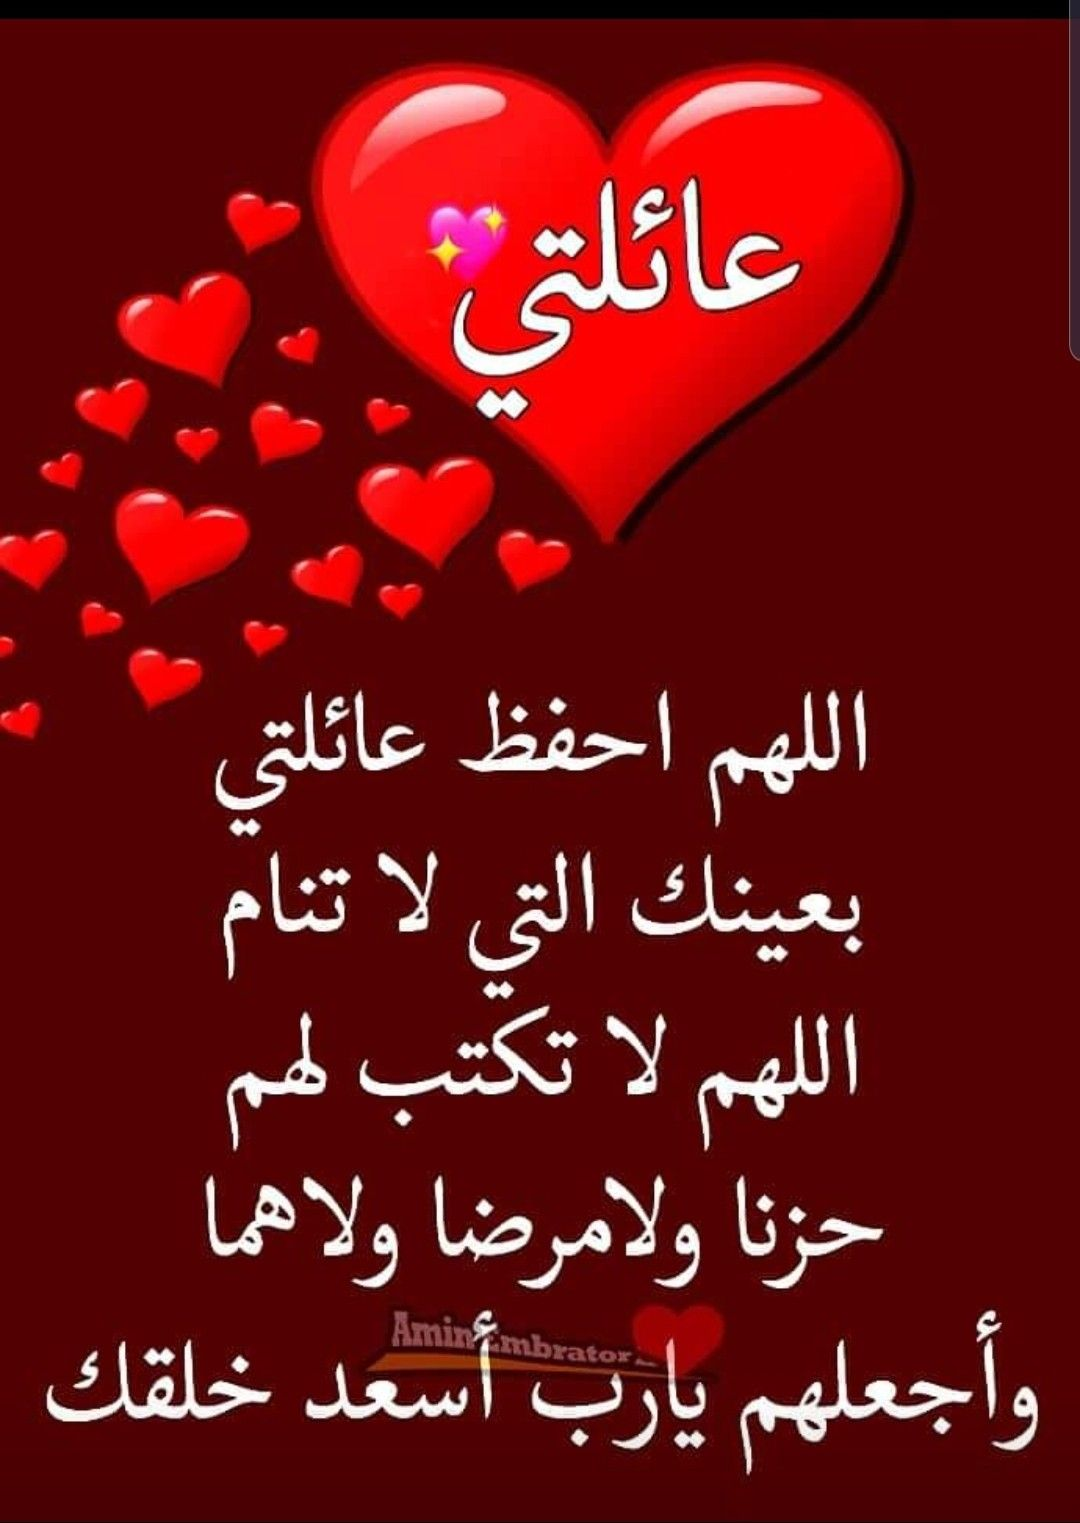 Pin By The Noble Quran On I Love Allah Quran Islam The Prophet Miracles Hadith Heaven Prophets Faith Prayer Dua حكم وعبر احاديث الله اسلام قرآن دعاء Arabic Quotes Islamic Love Quotes